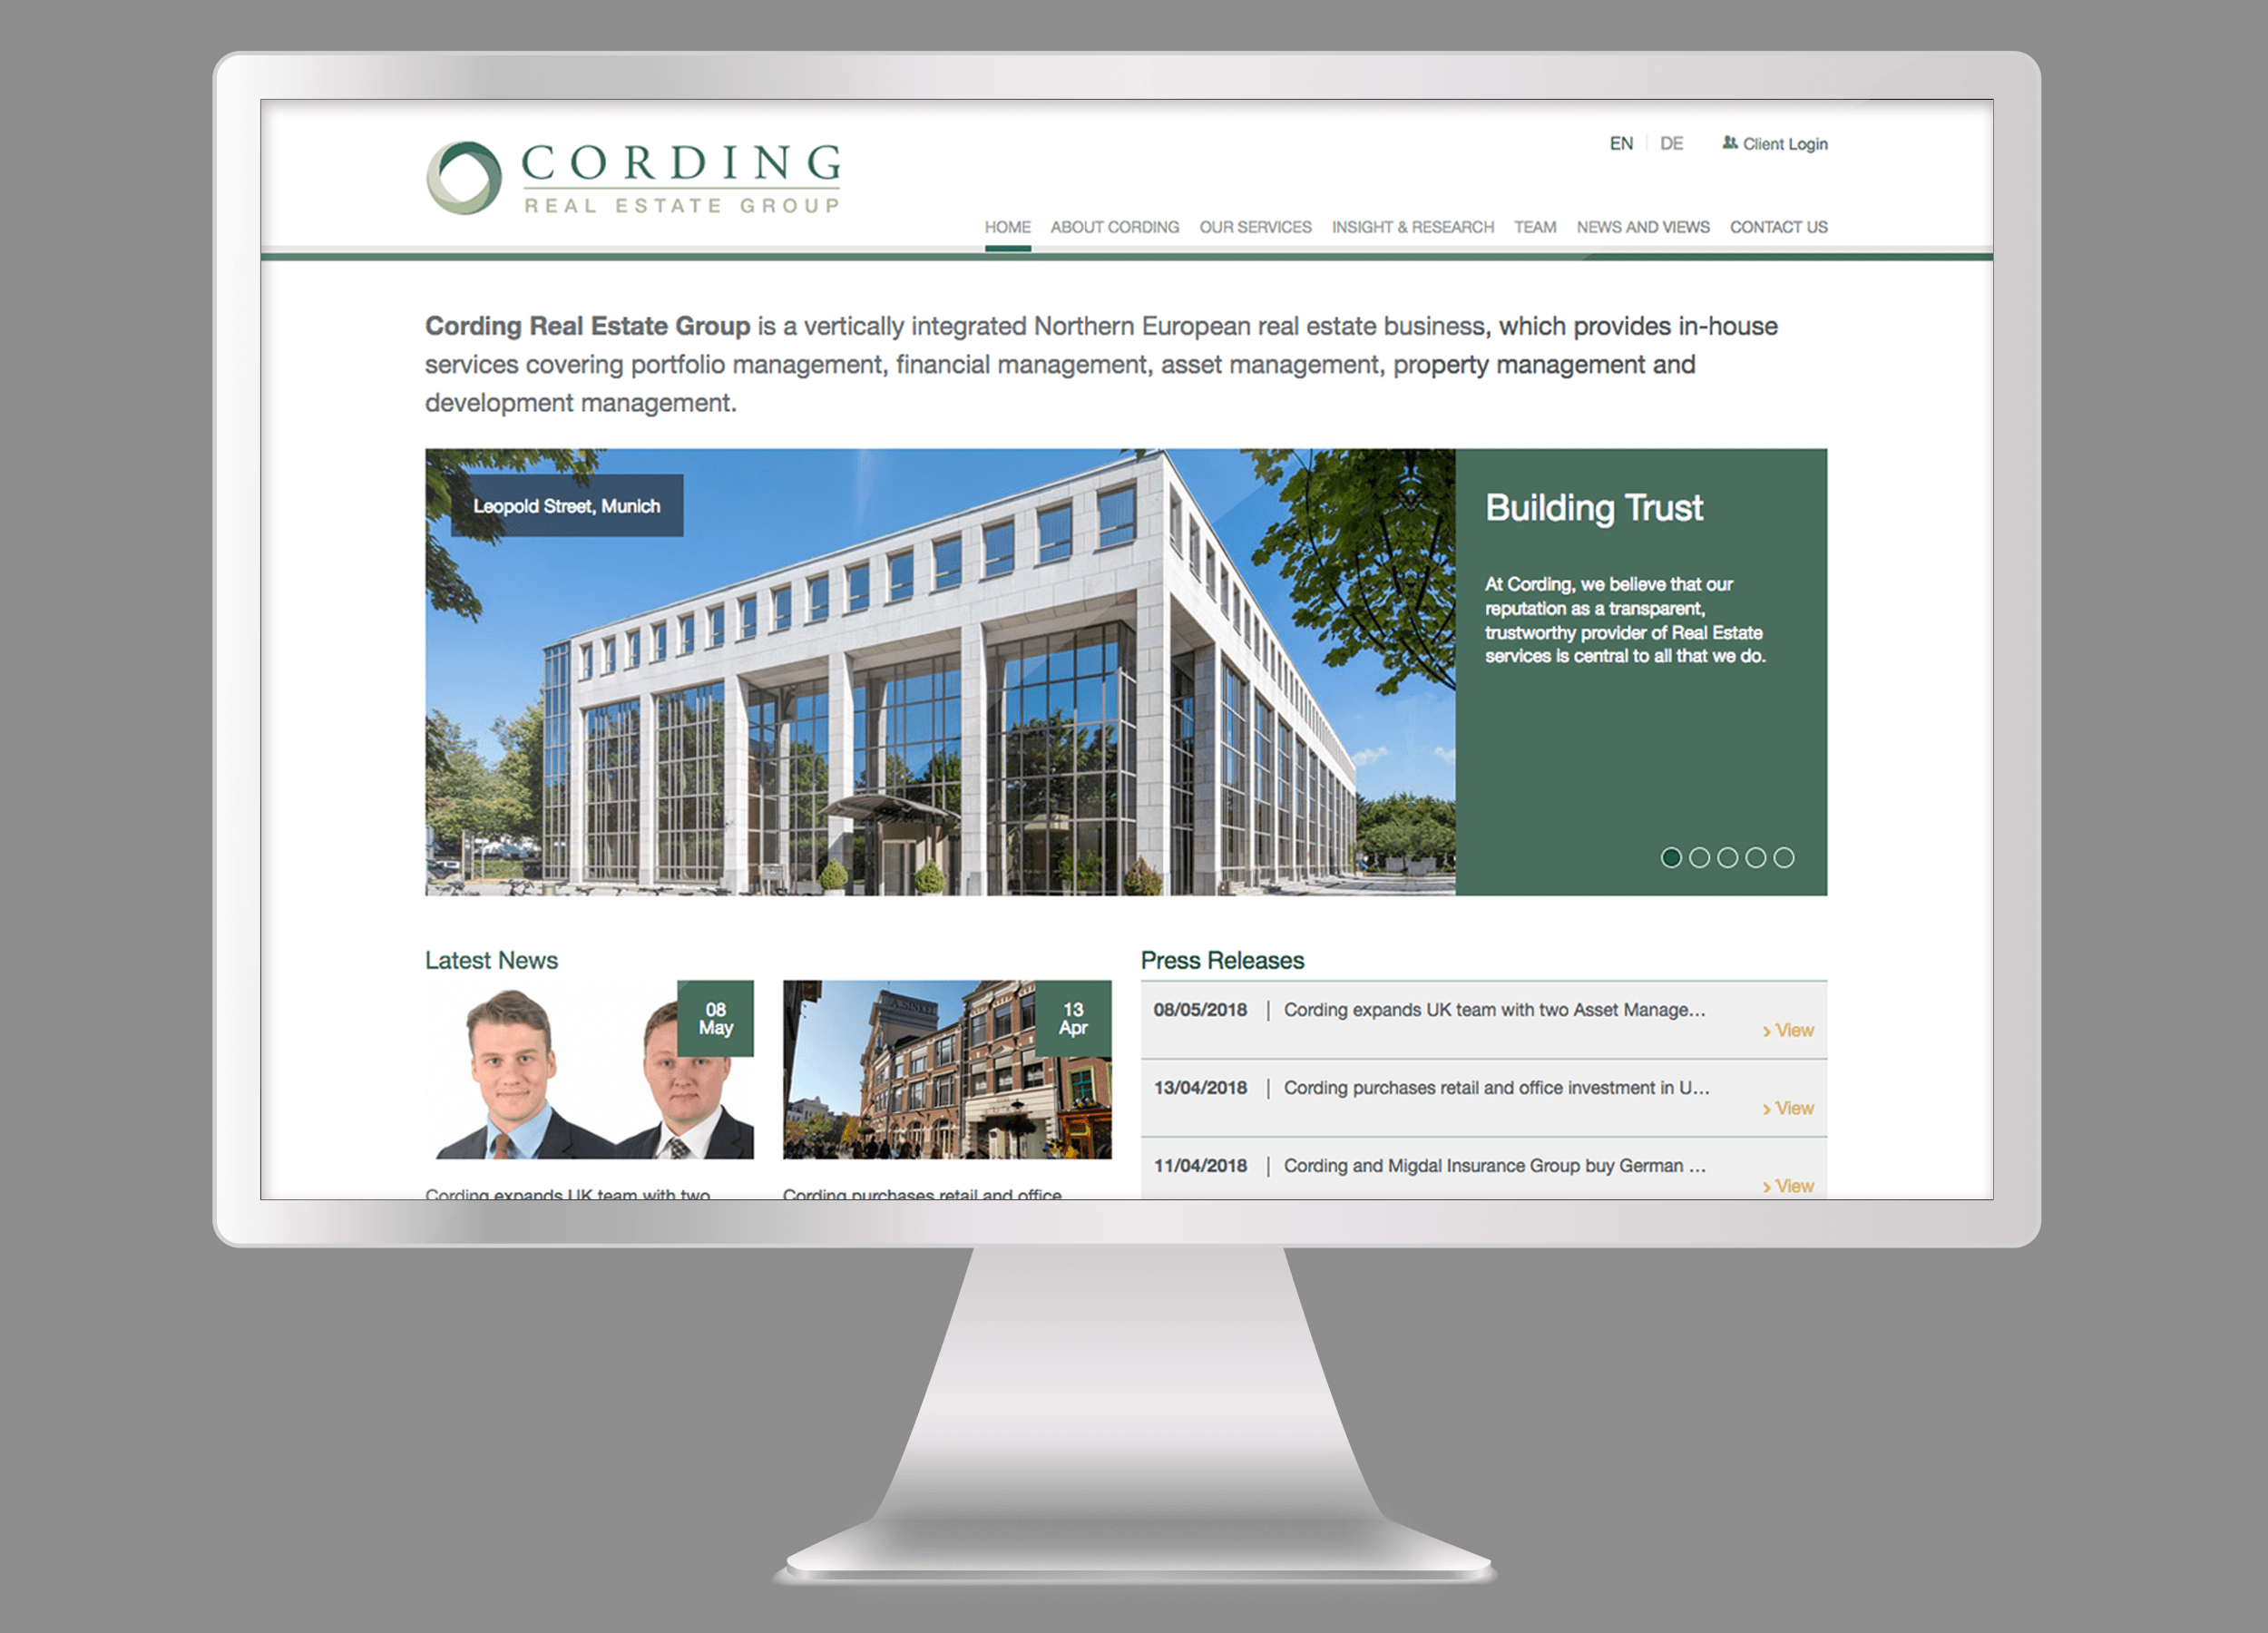 Cording Real Estate Group